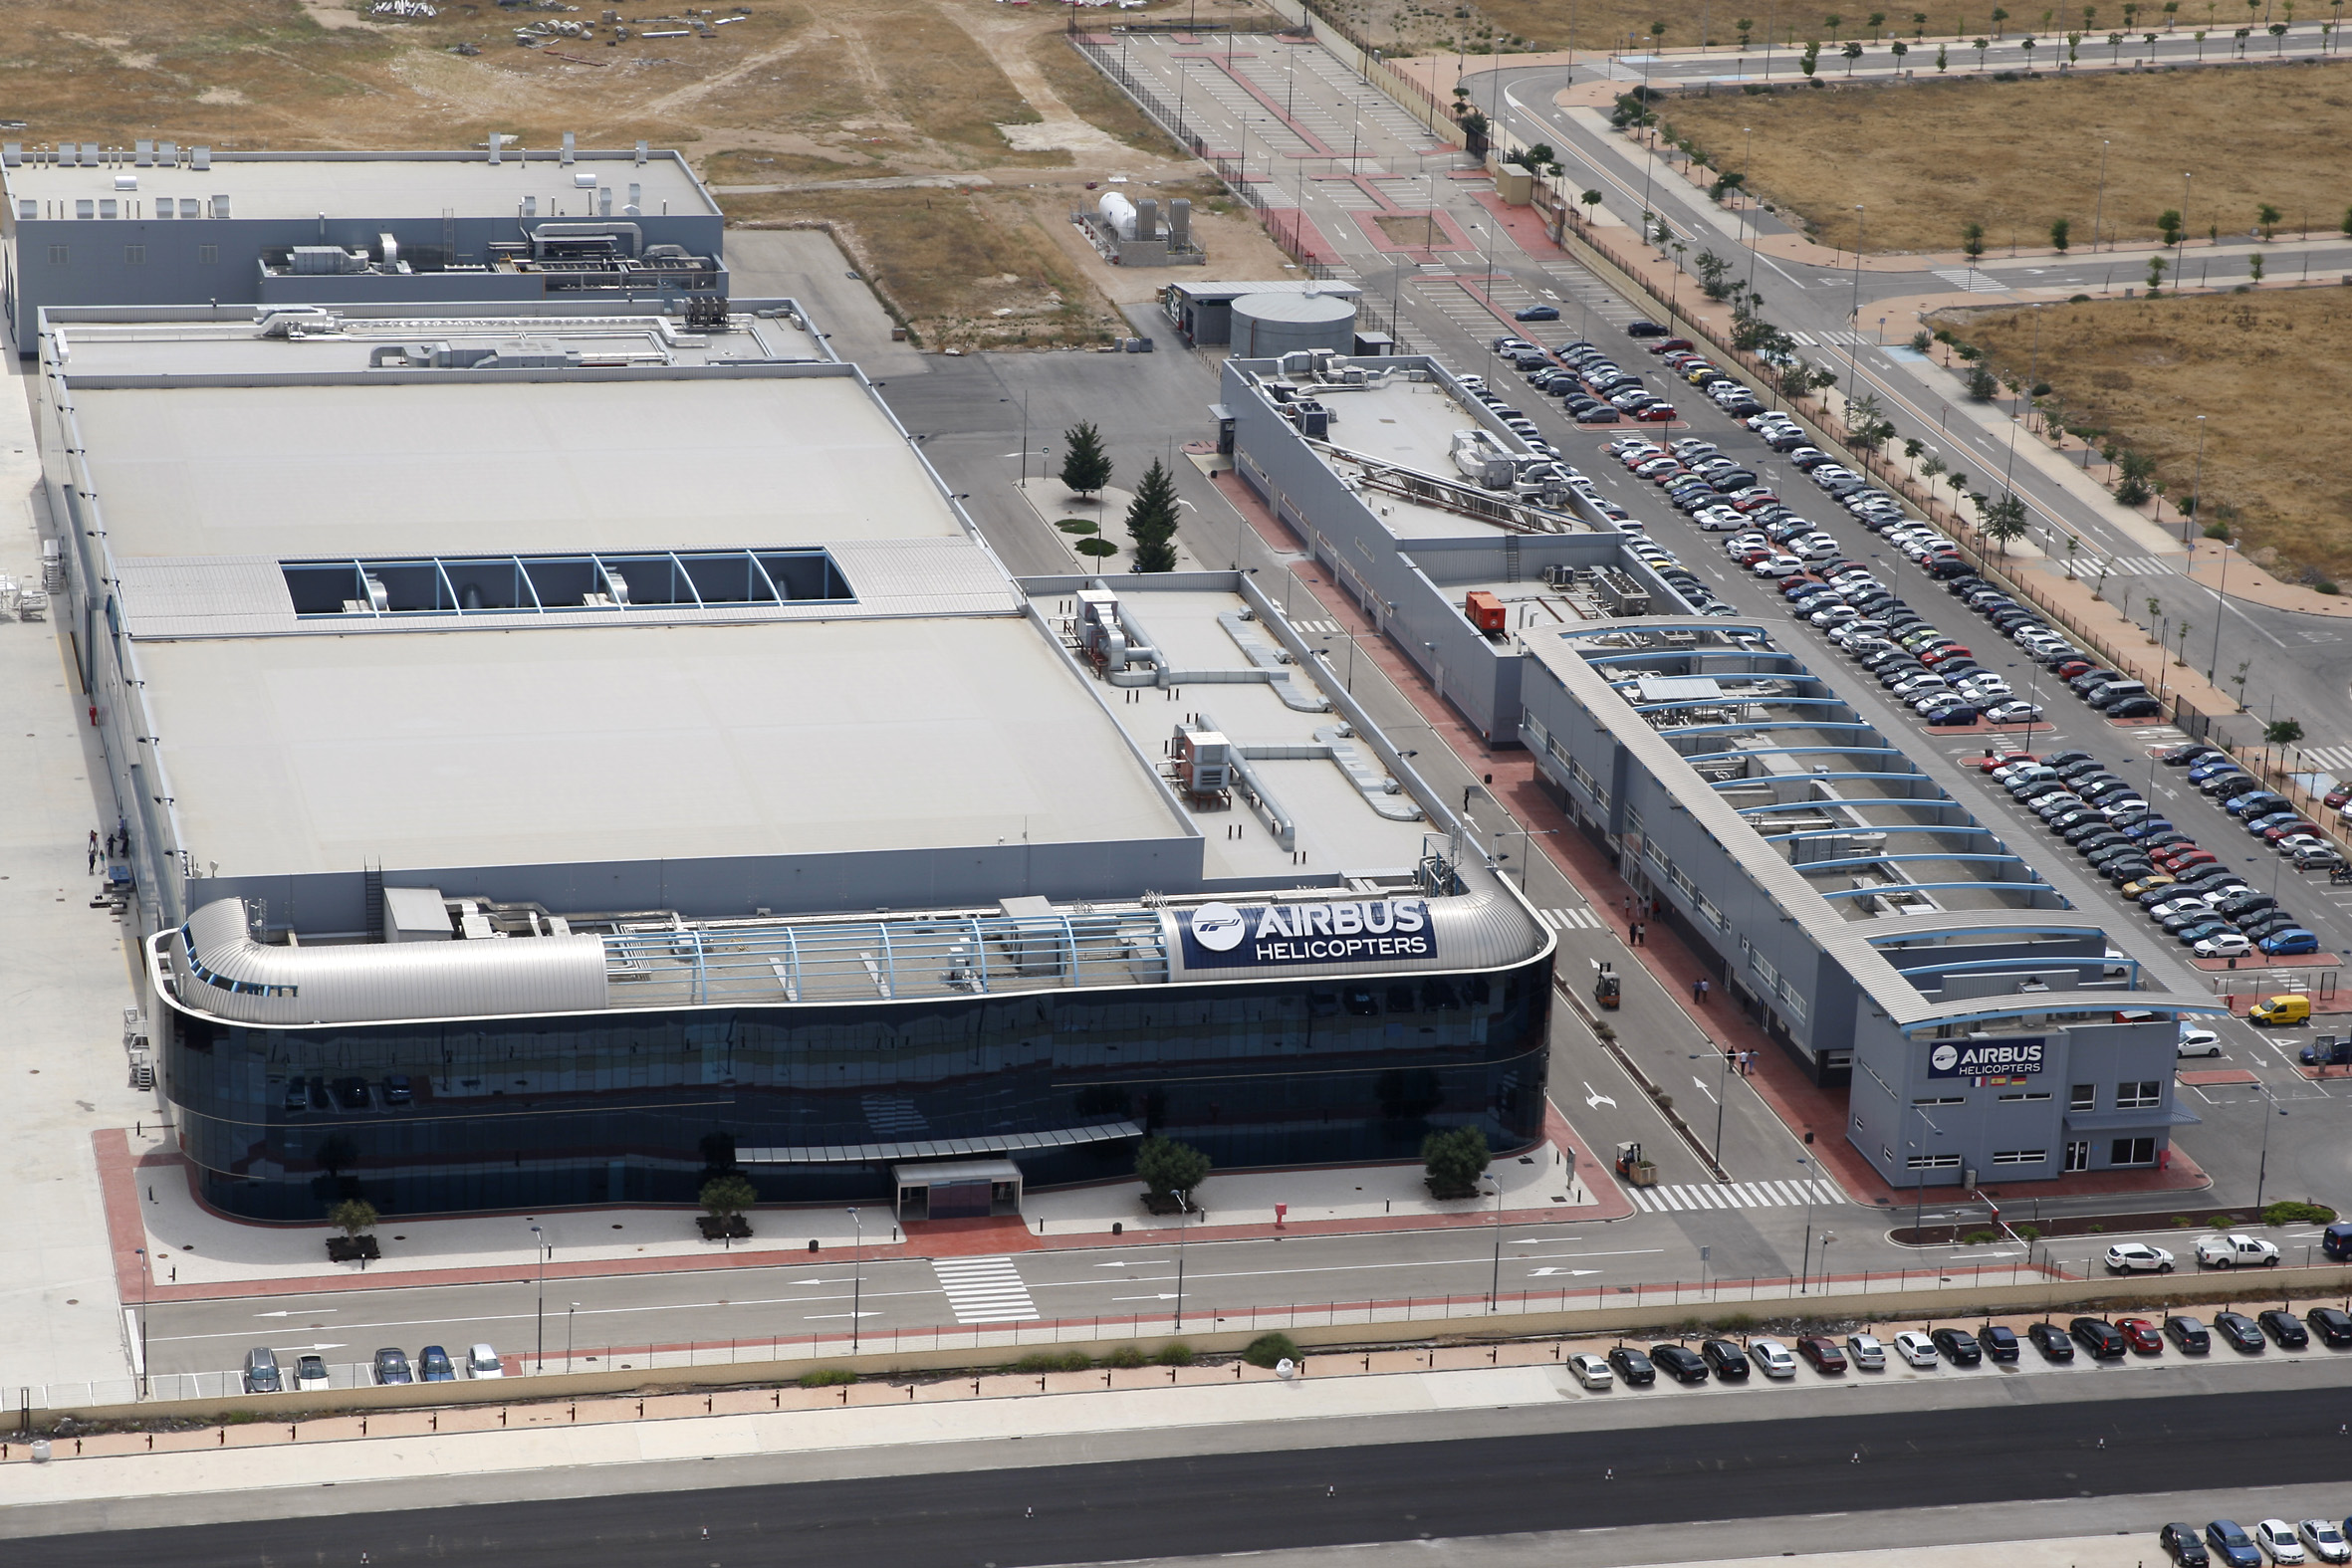 Airbus Helicopters' Albacete plant will become a center of excellence for the manufacture of major components assemblies. Airbus Helicopters Photo